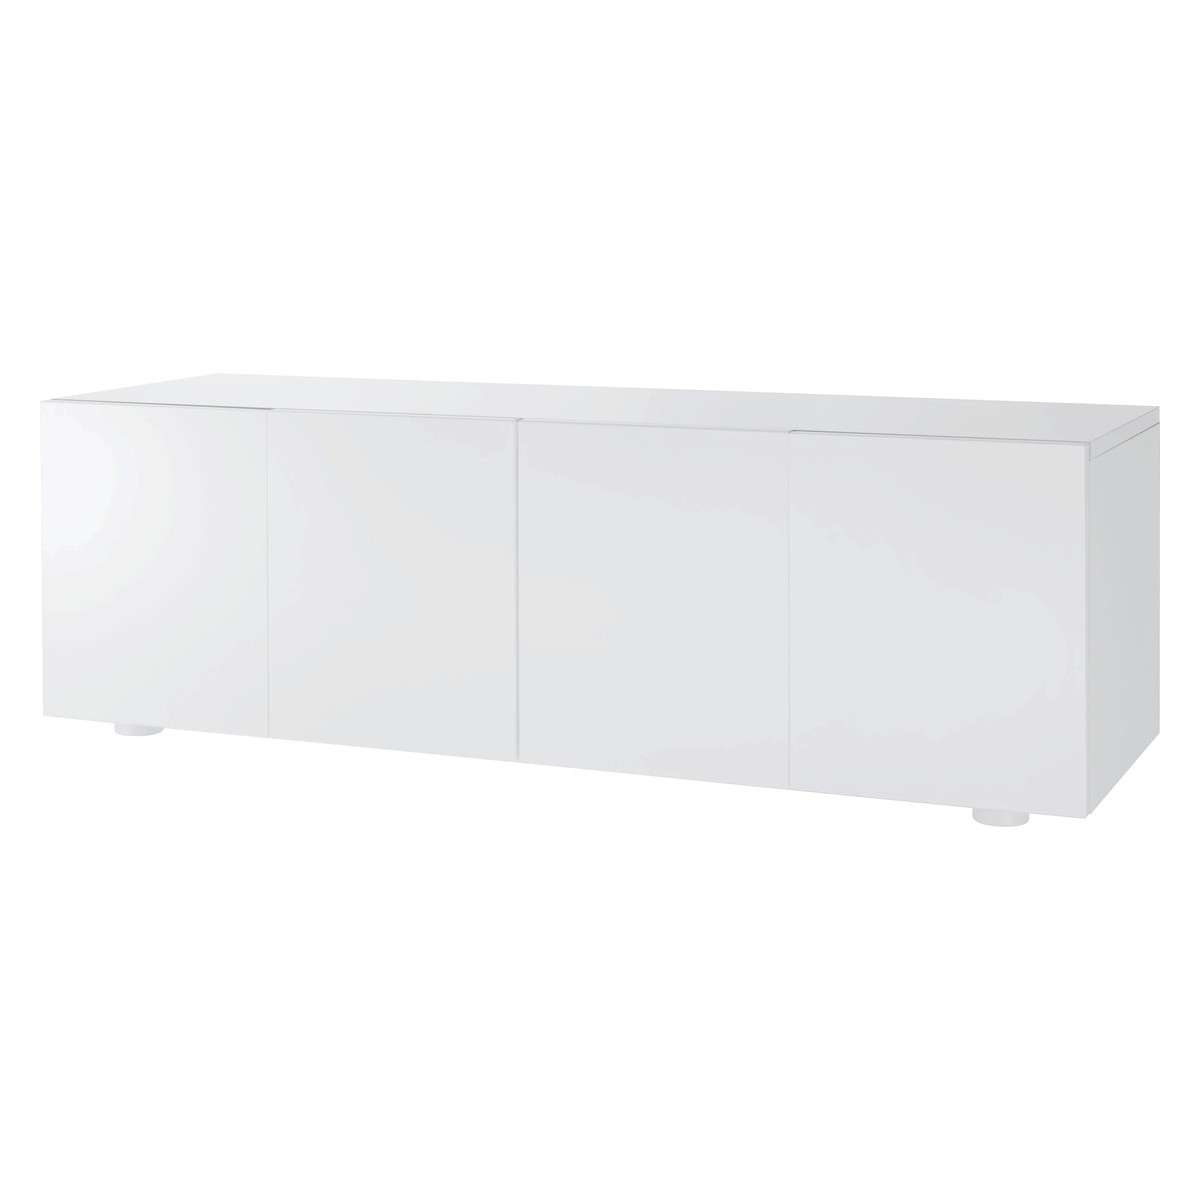 Aspen White High Gloss Long Cabinet | Buy Now At Habitat Uk Within Large White Sideboards (View 3 of 20)